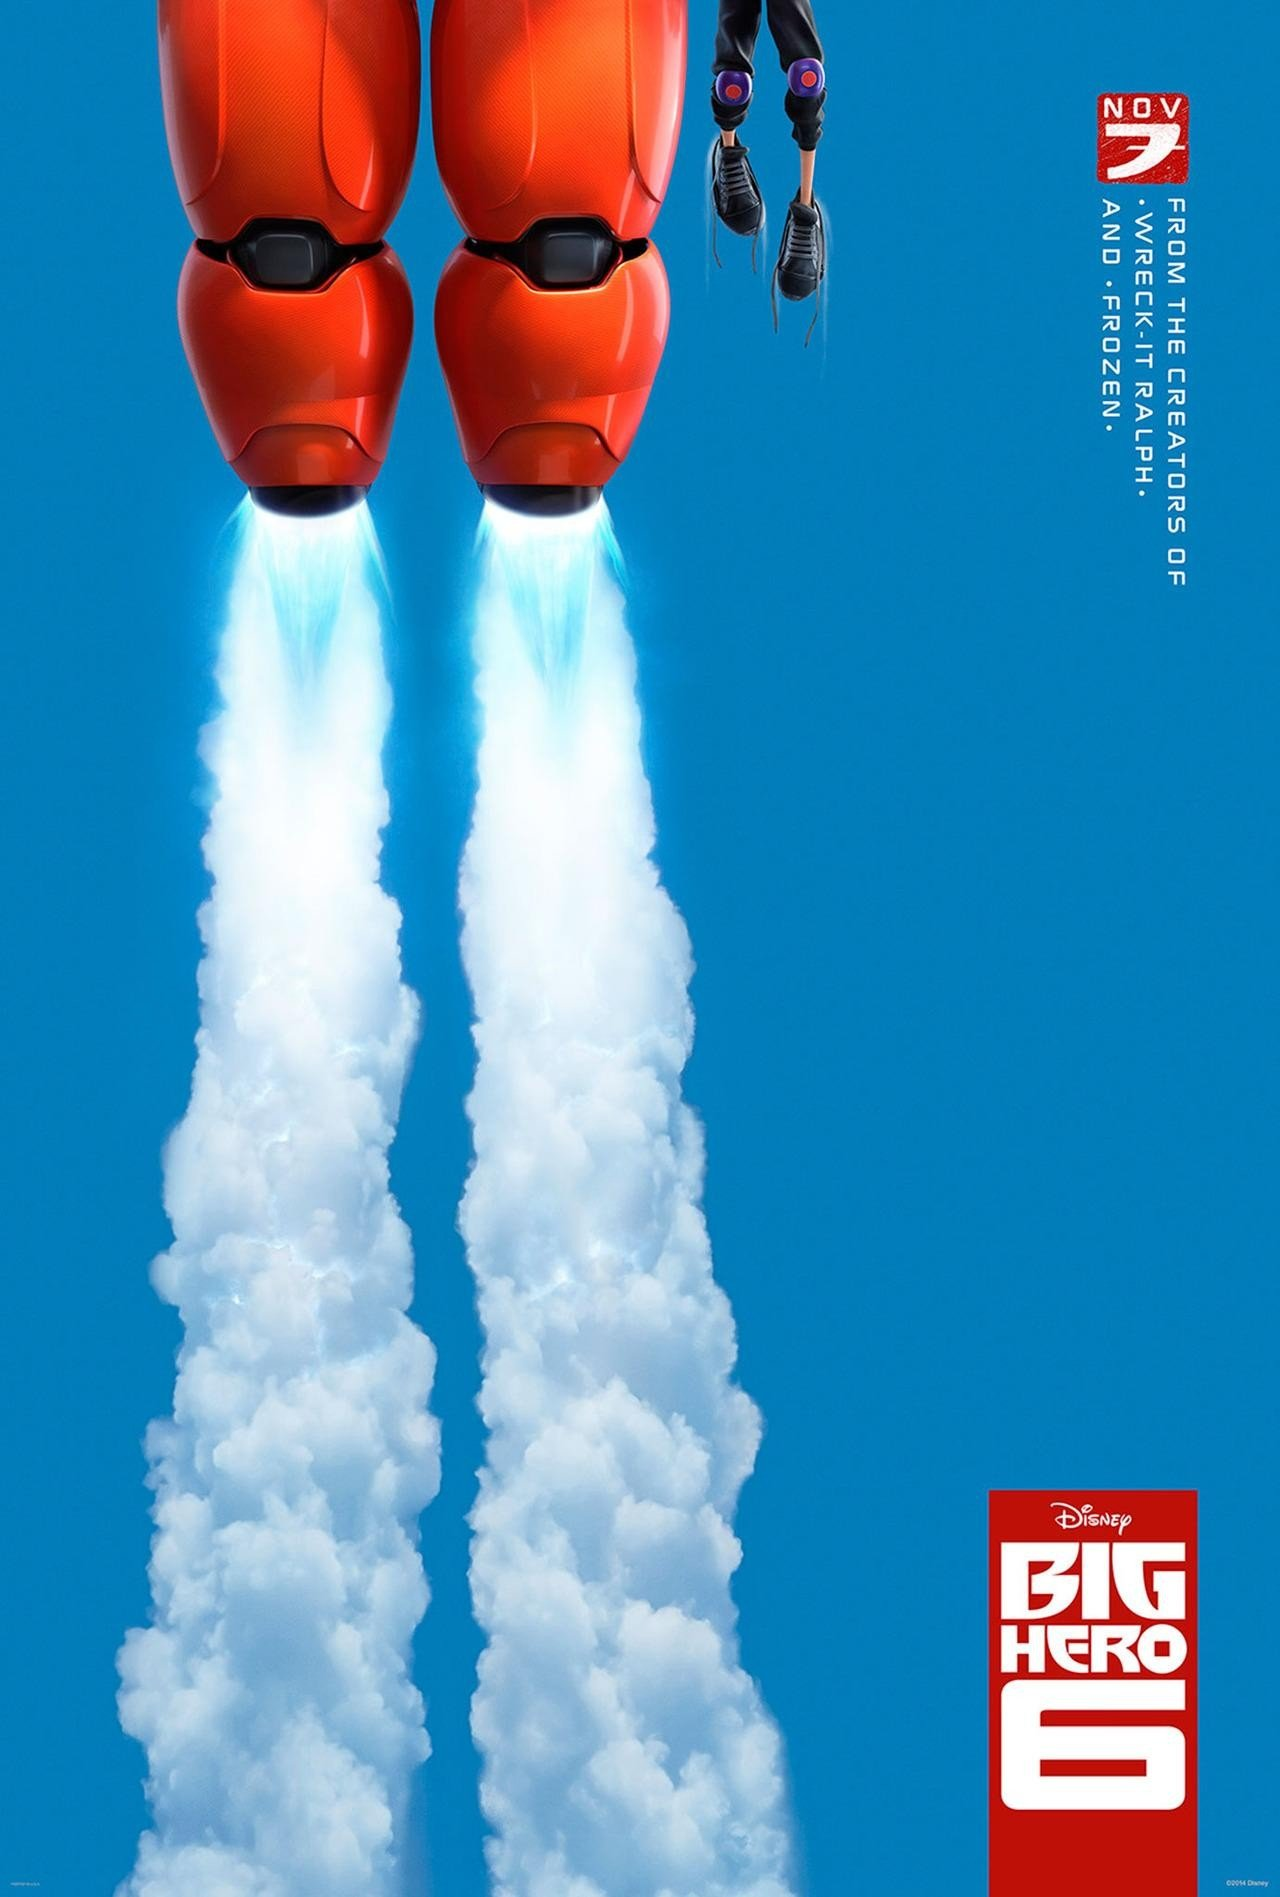 New Teaser Trailer And Poster For Big Hero 6